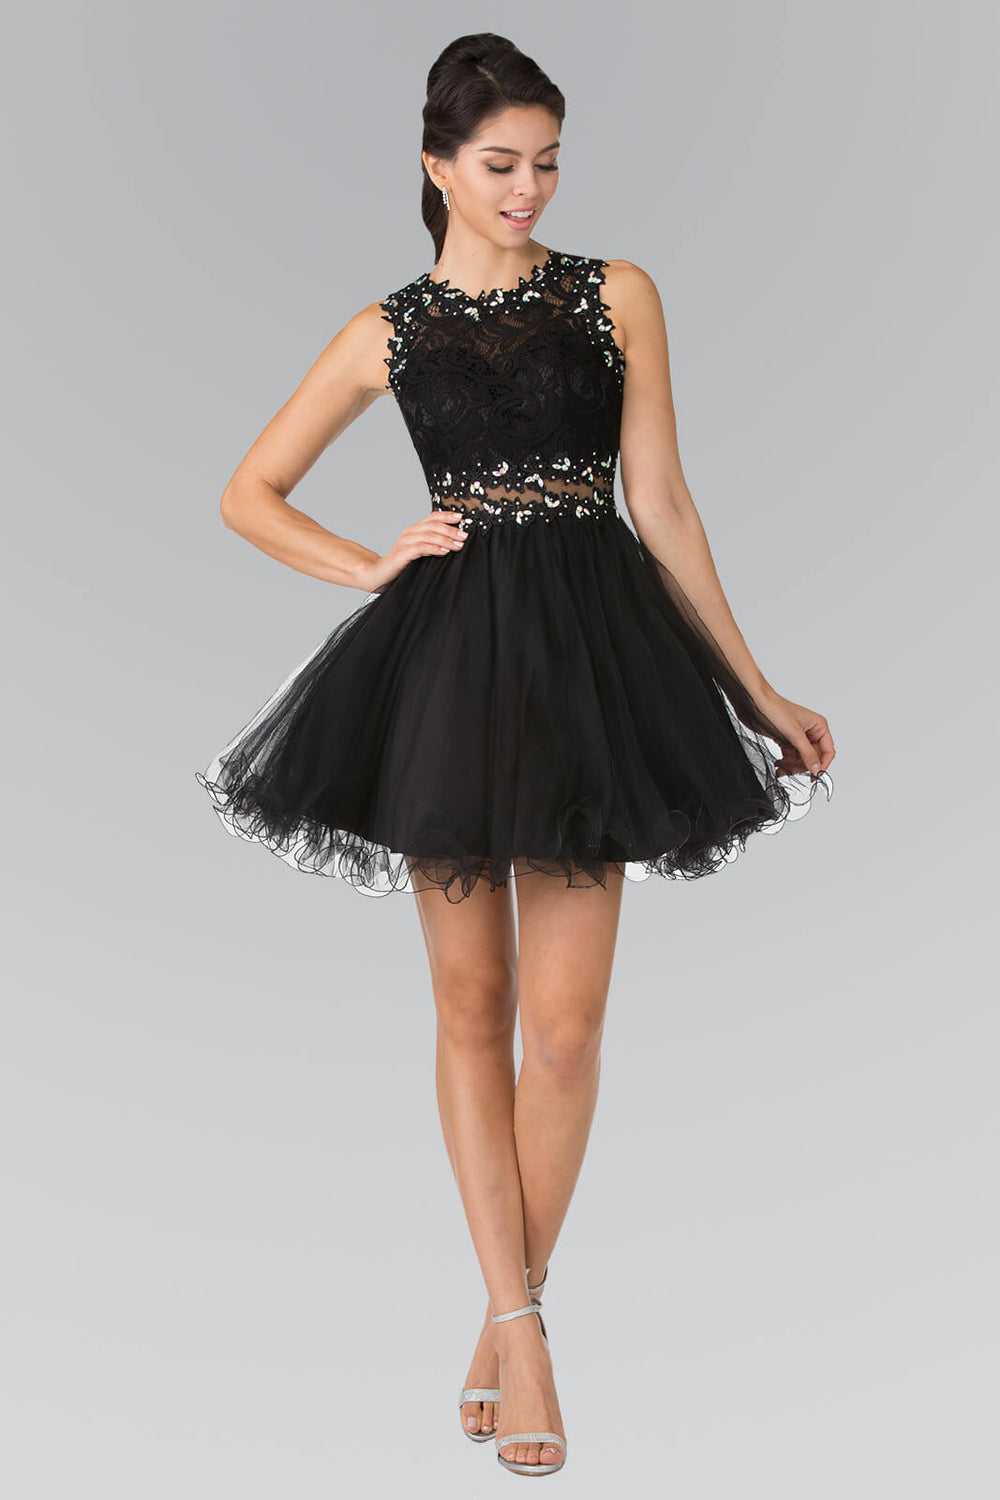 Sleeveless Prom Short Dress Homecoming - The Dress Outlet Black